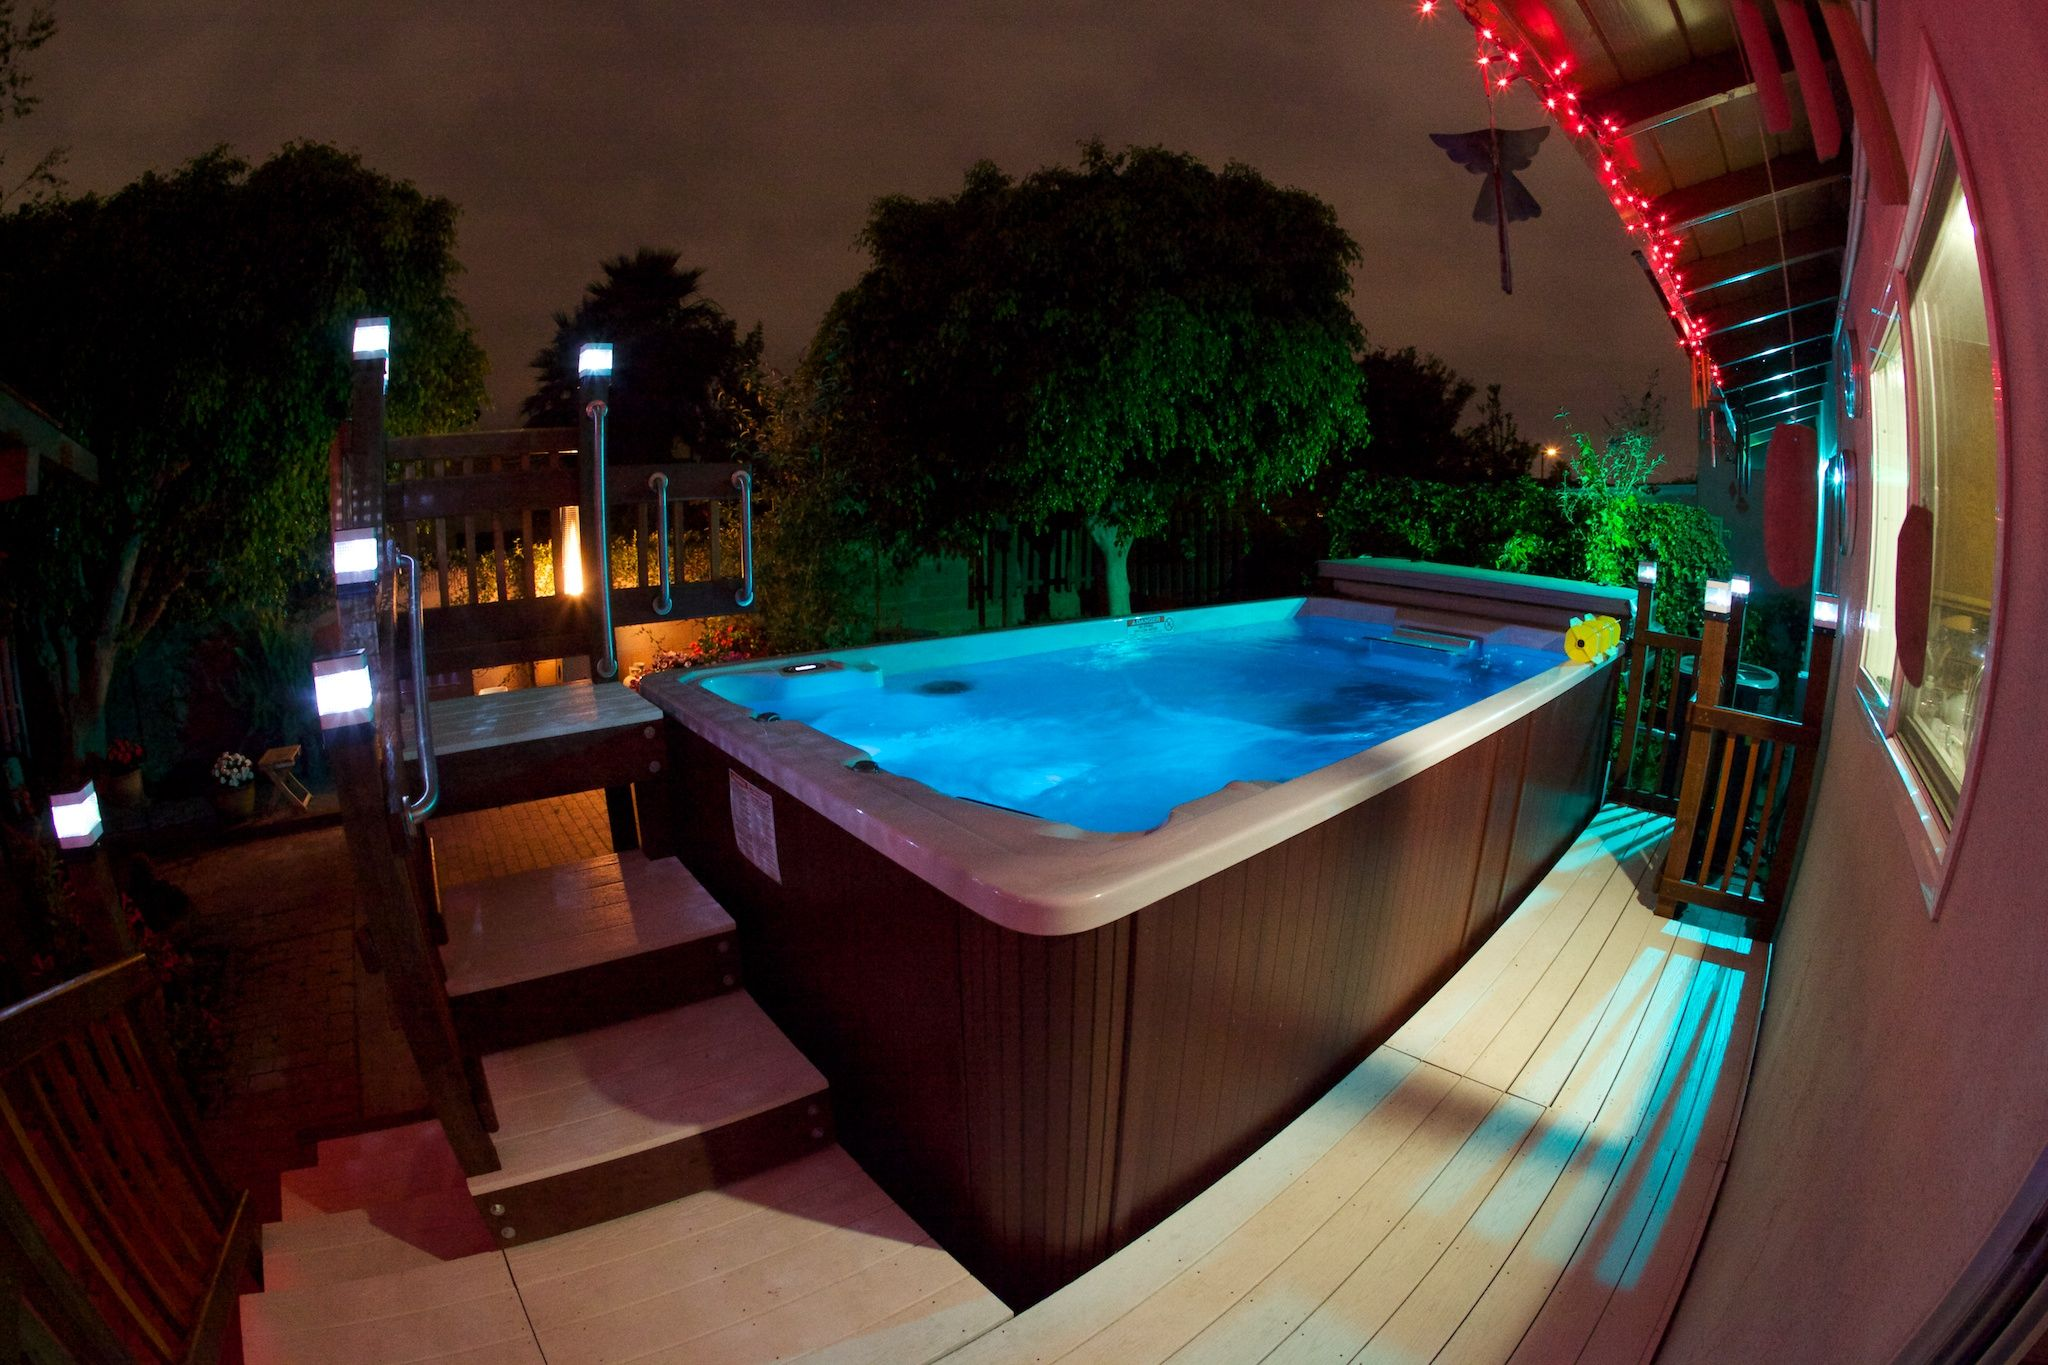 The Only Thing Missing From This Endless Pool Swim Spa Photo Is You Try Our Swim Spa